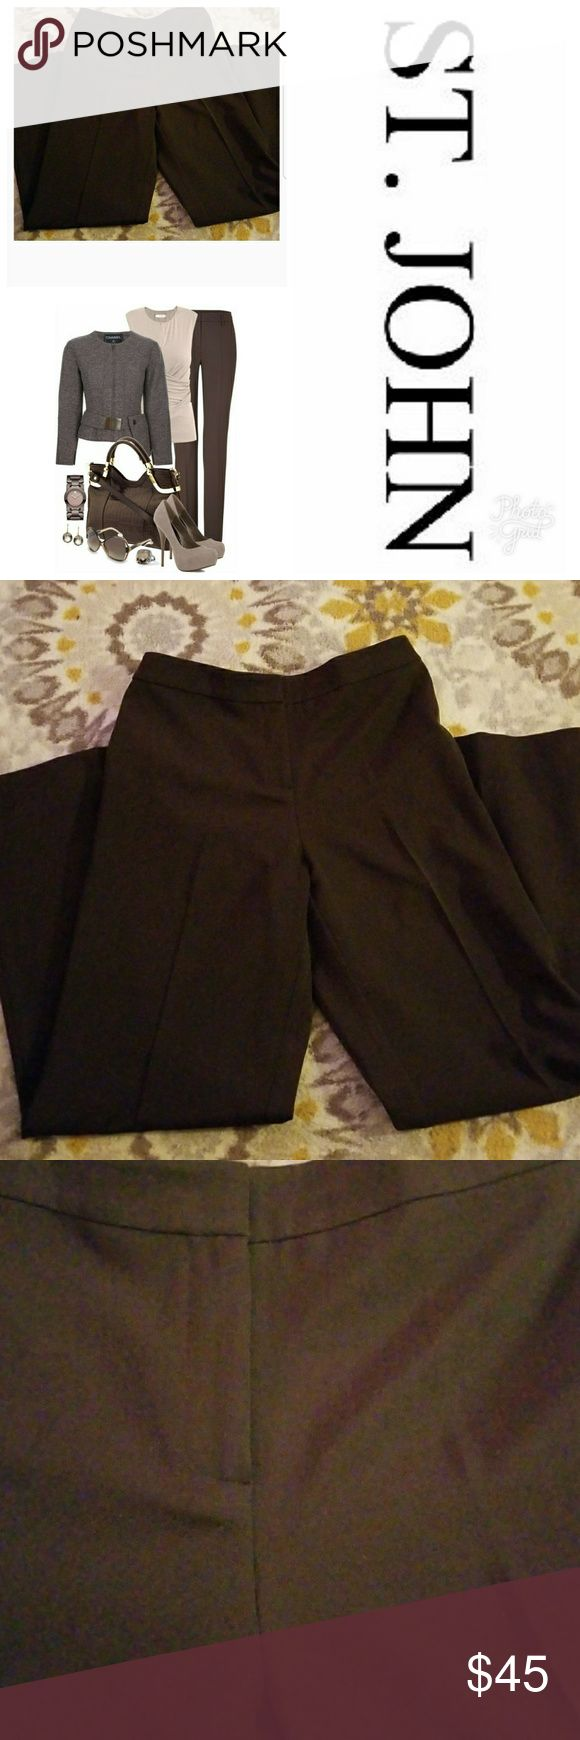 "St. John Brown Slacks/ Pants St. John brown slacks in excellent used condition. Zipper and clasp closure. Creasing in the legs. No pockets. Nice tailored look. Size 6. Inseam 31"" St. John Pants"